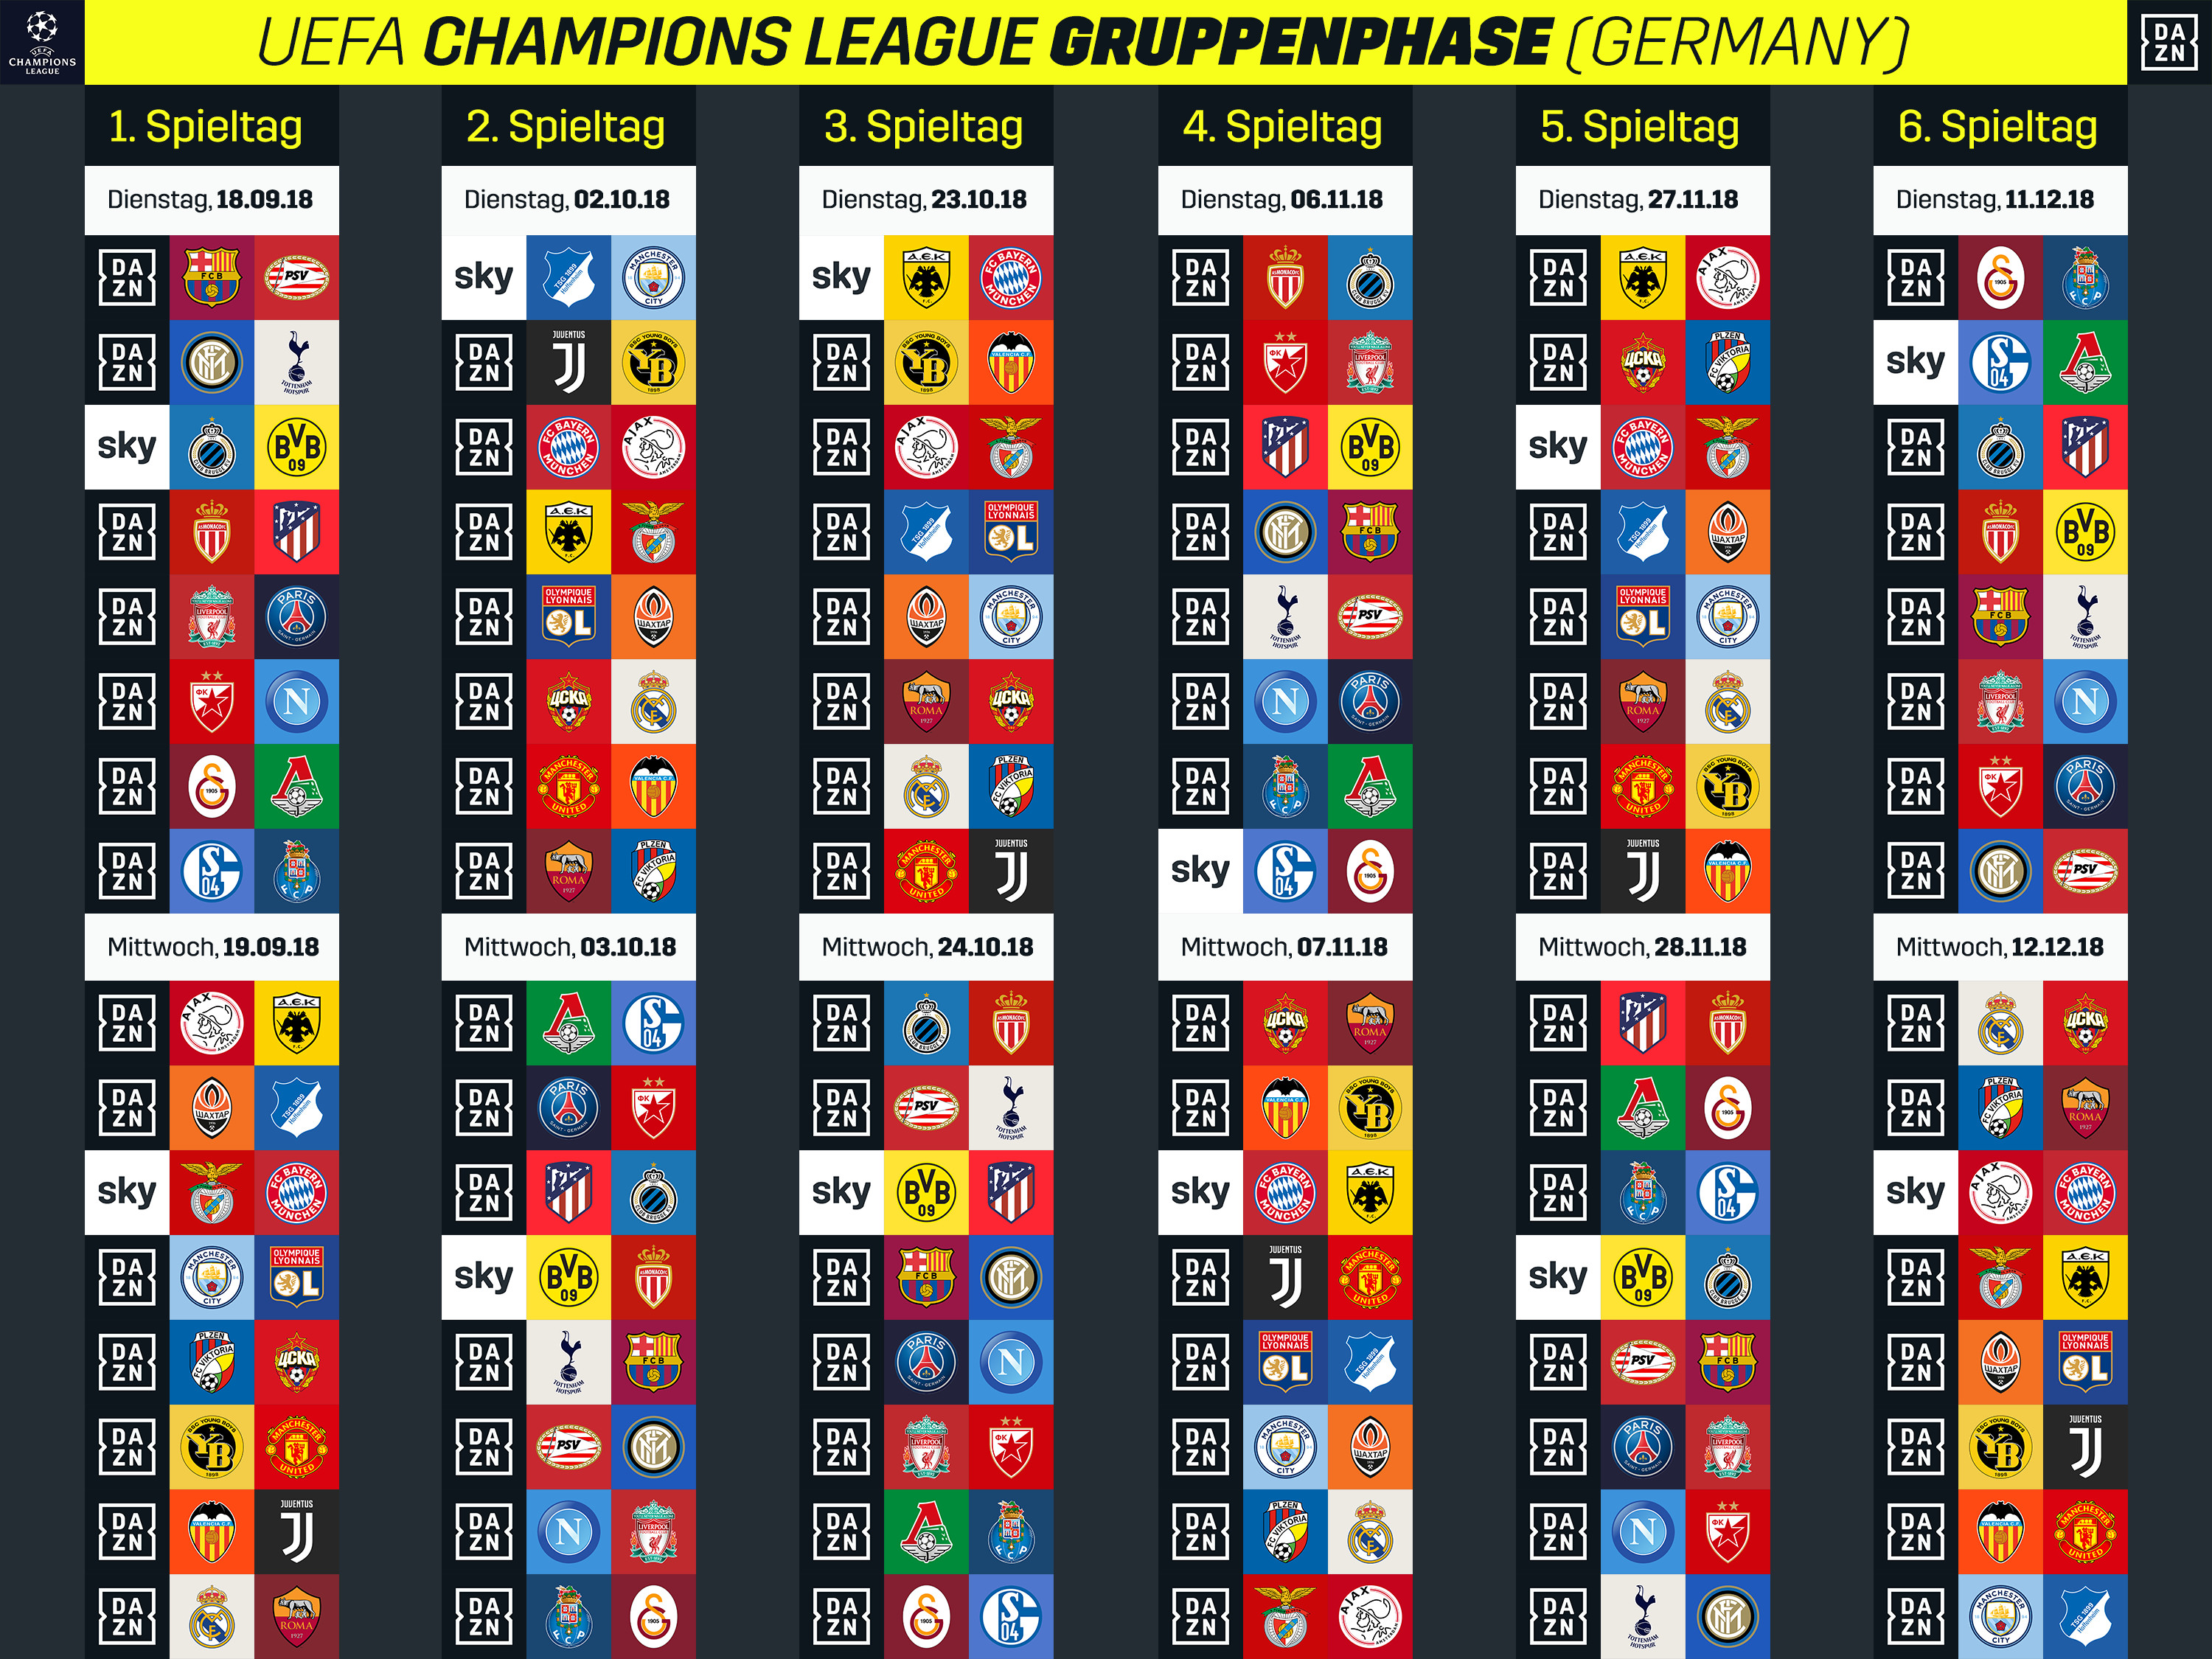 Champions League Ausstrahlung